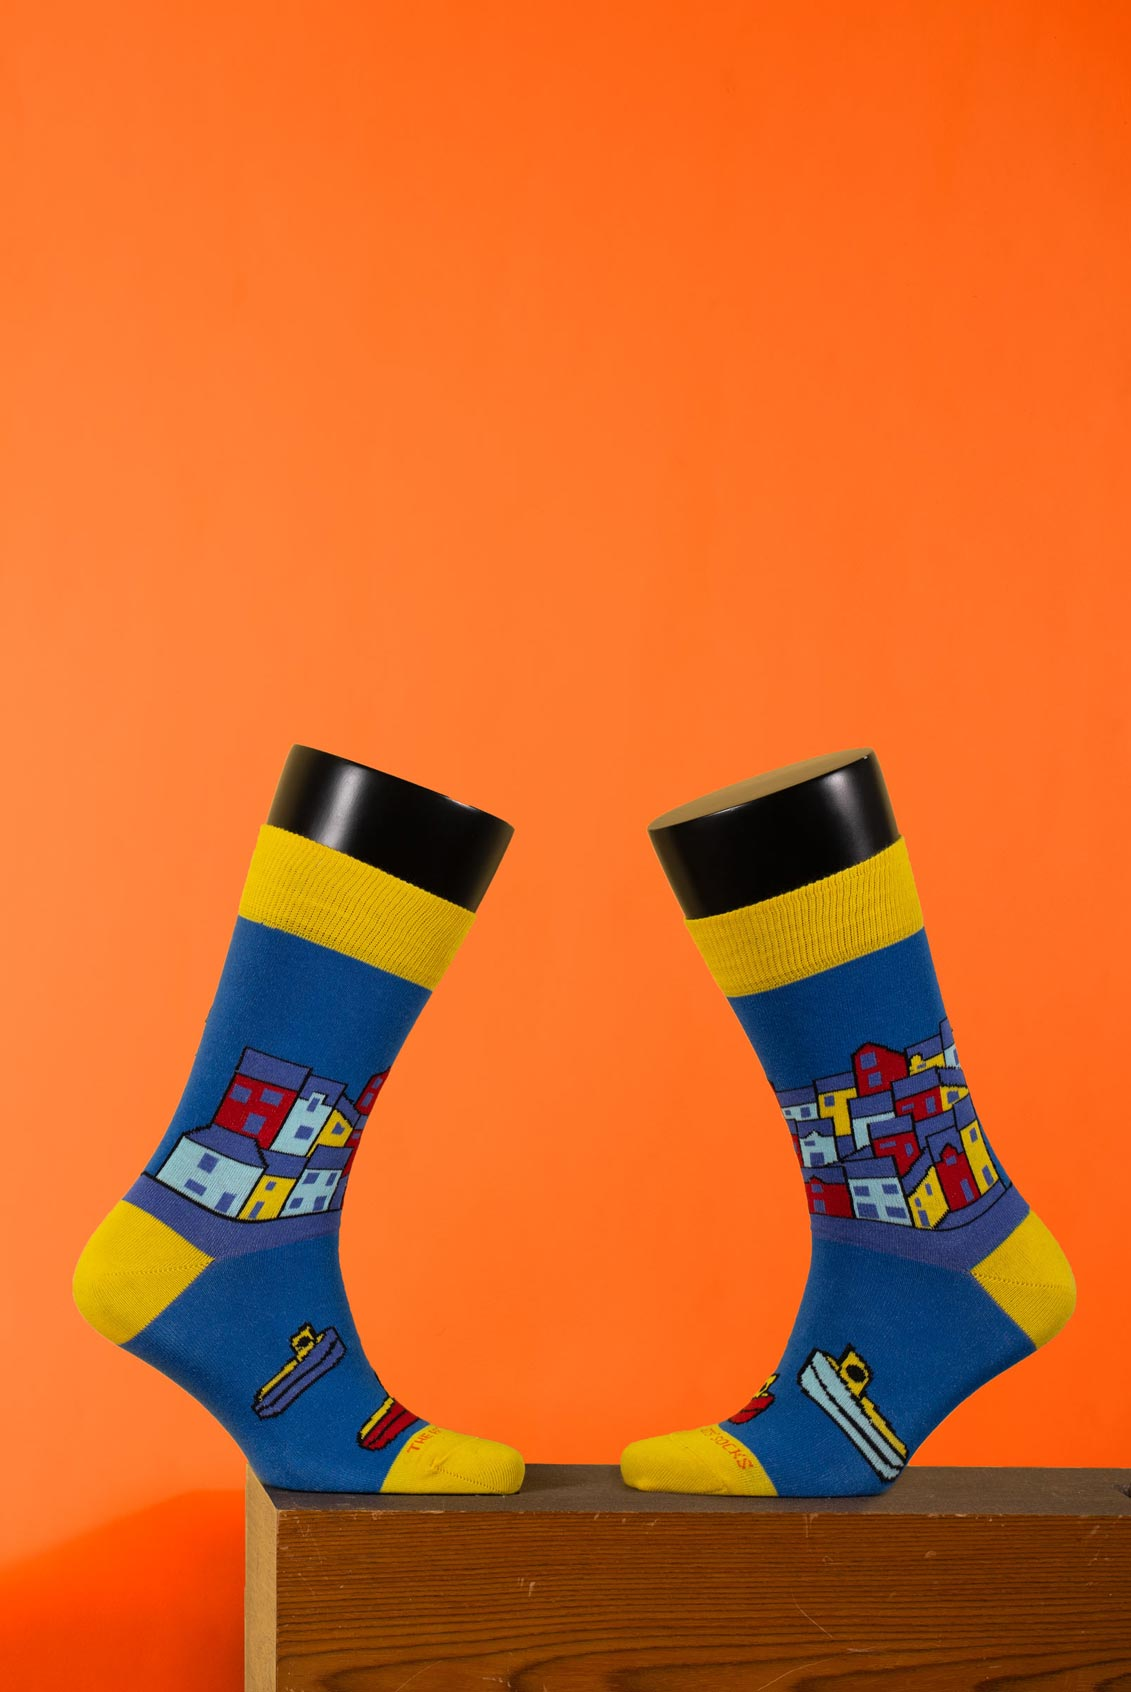 picture of socks